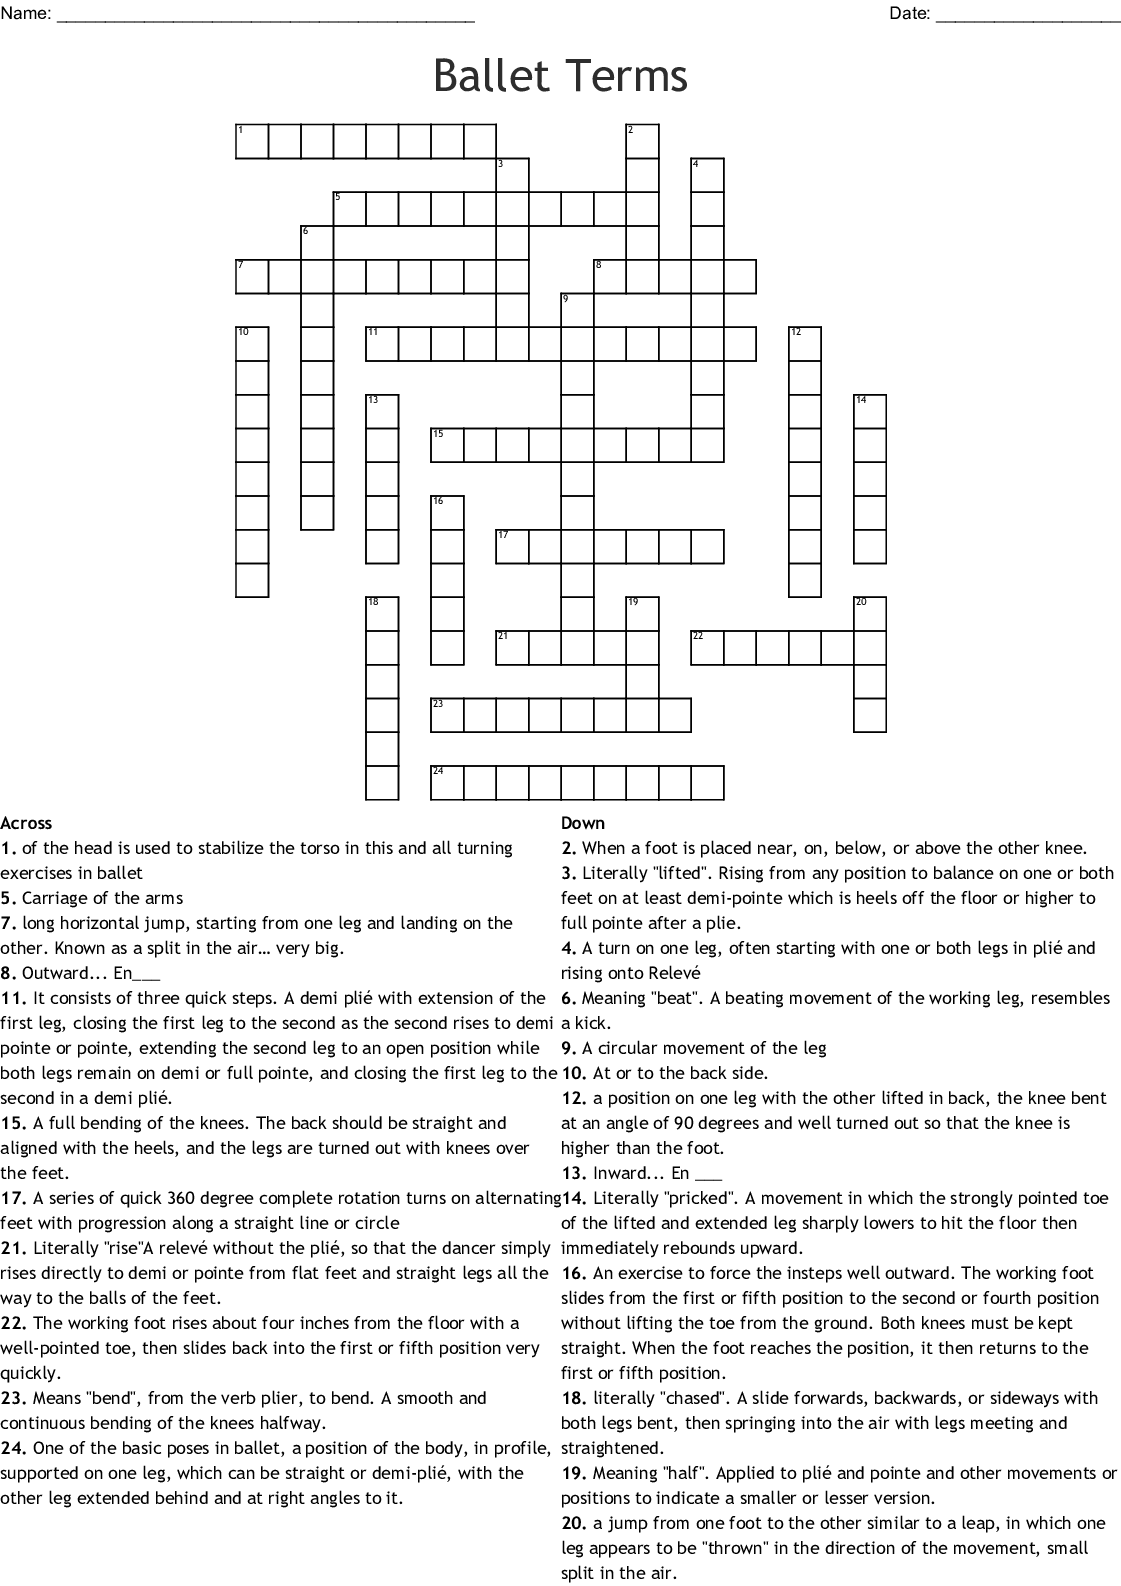 Jazz Unit Crossword